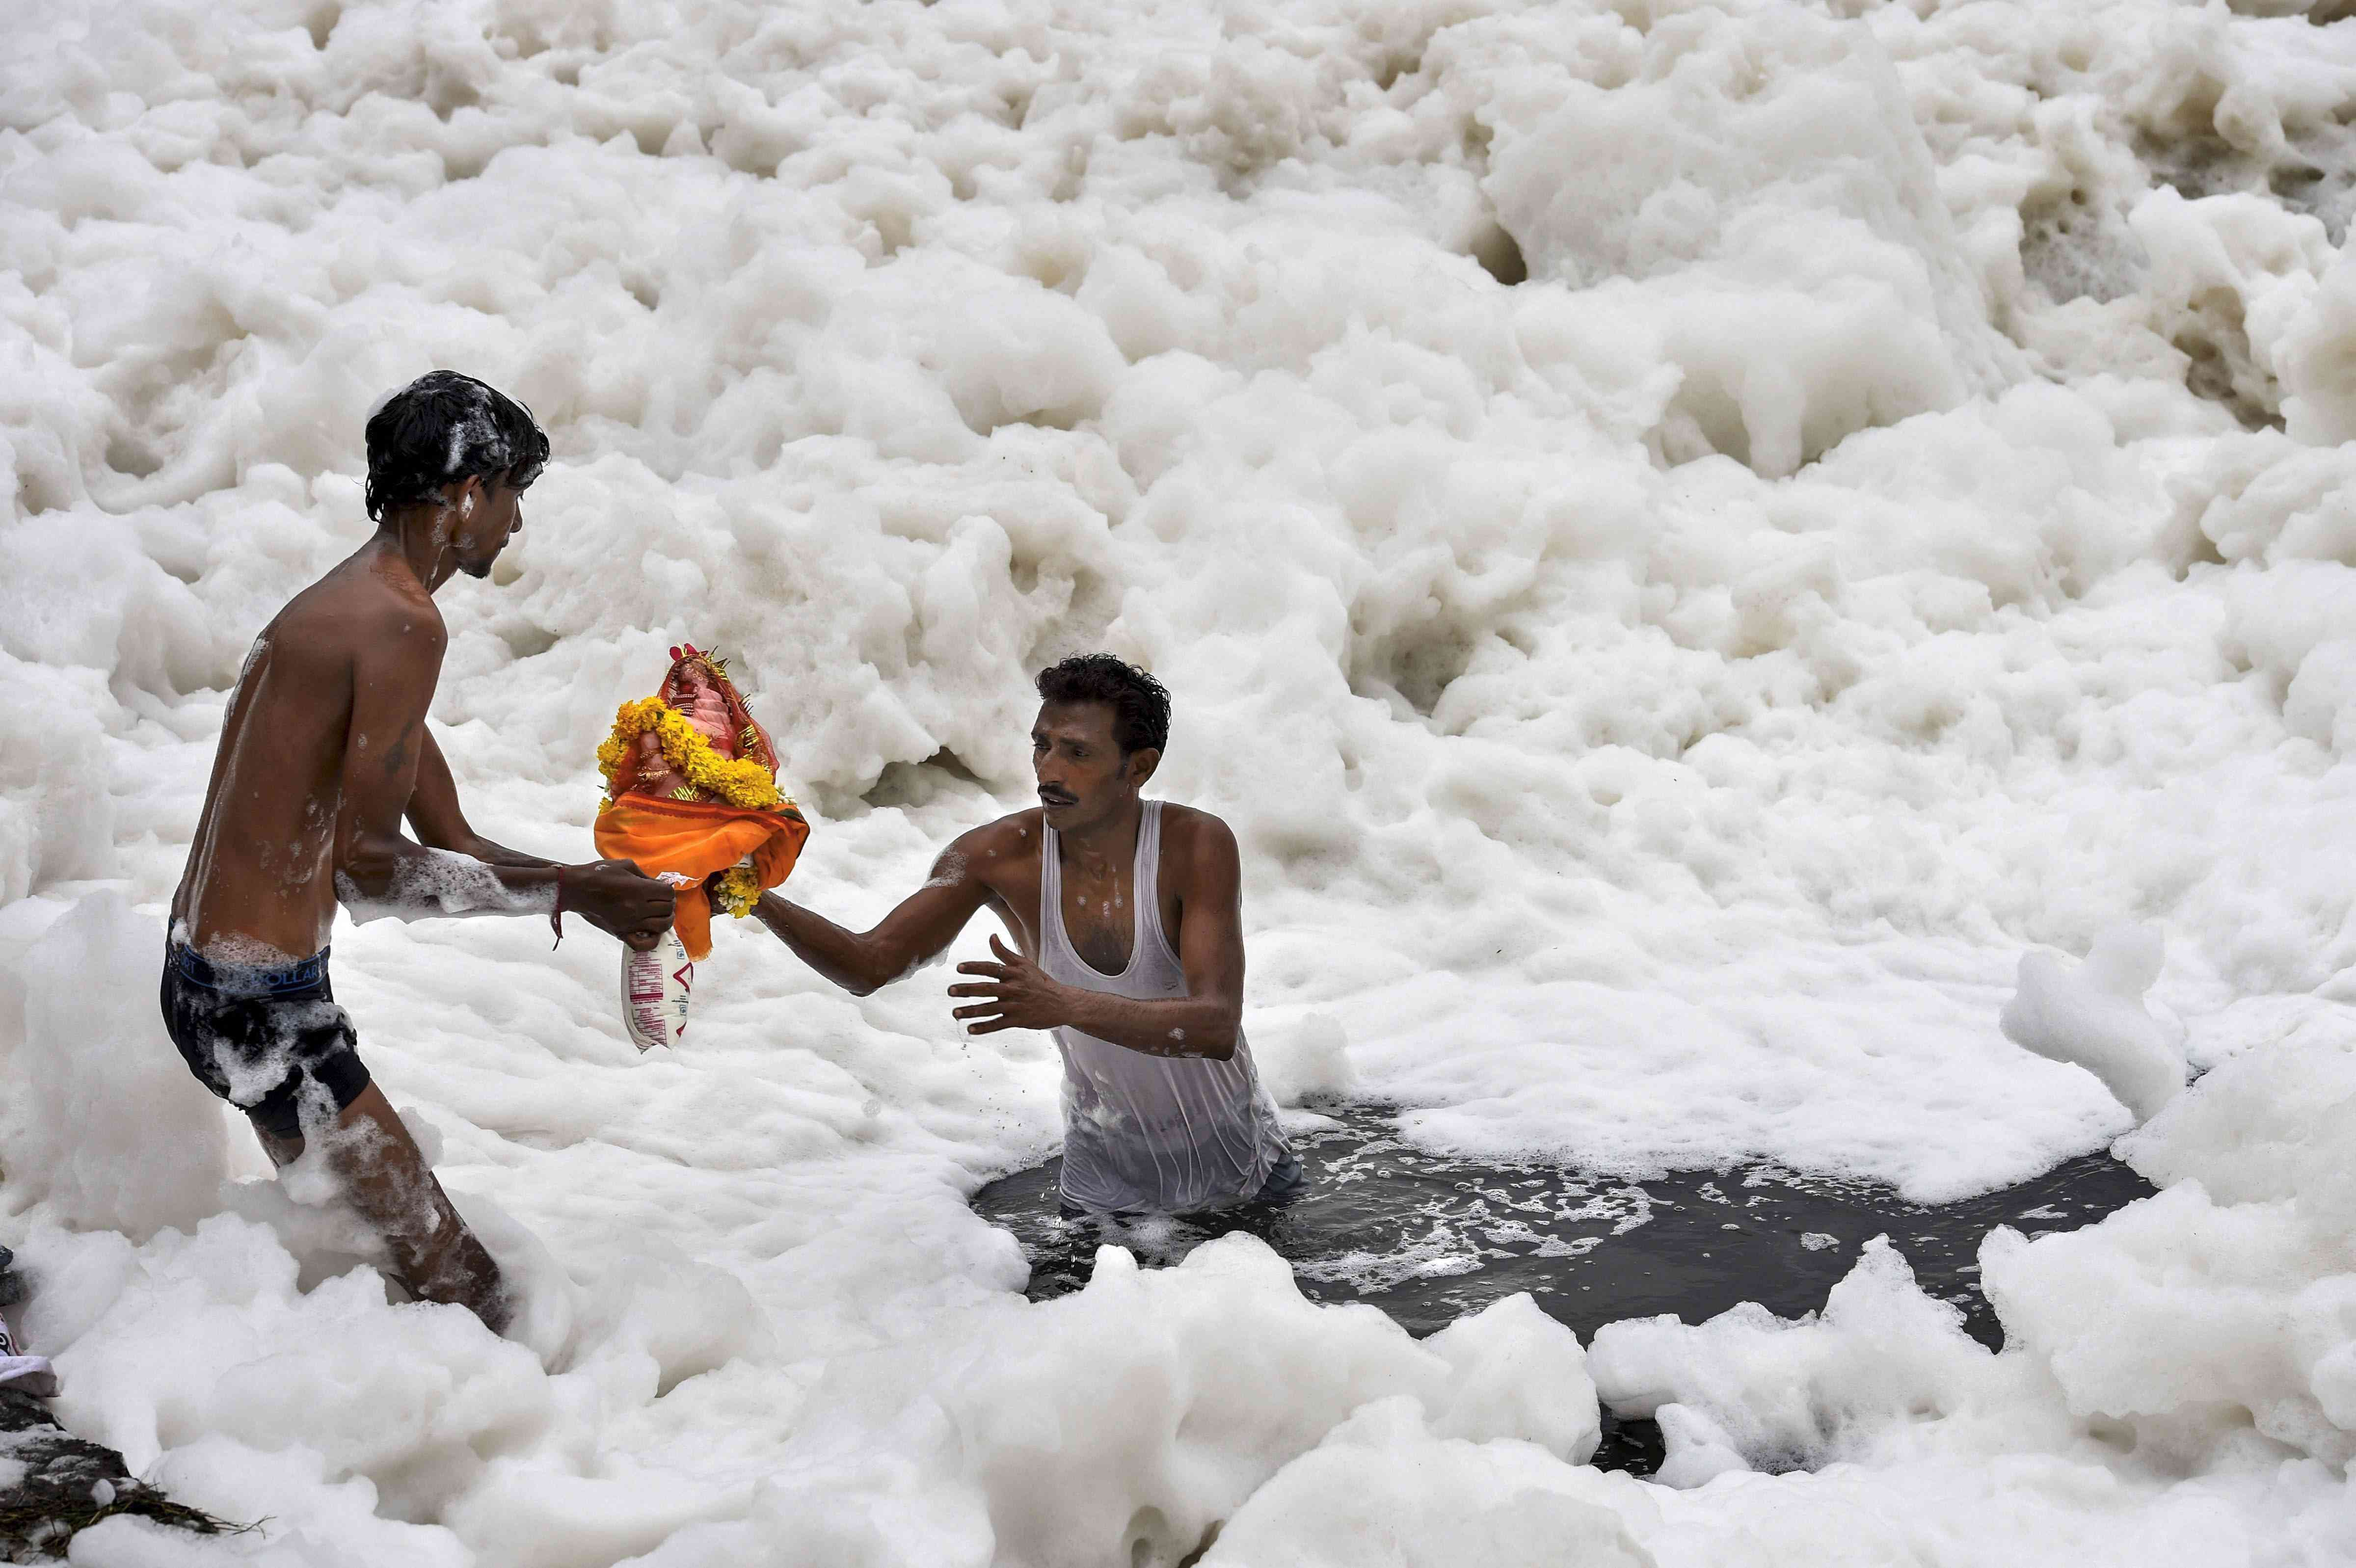 Devotees carry an idol of Ganesha to immerse it in Yamuna in Delhi on Sunday. (Credit: PTI)